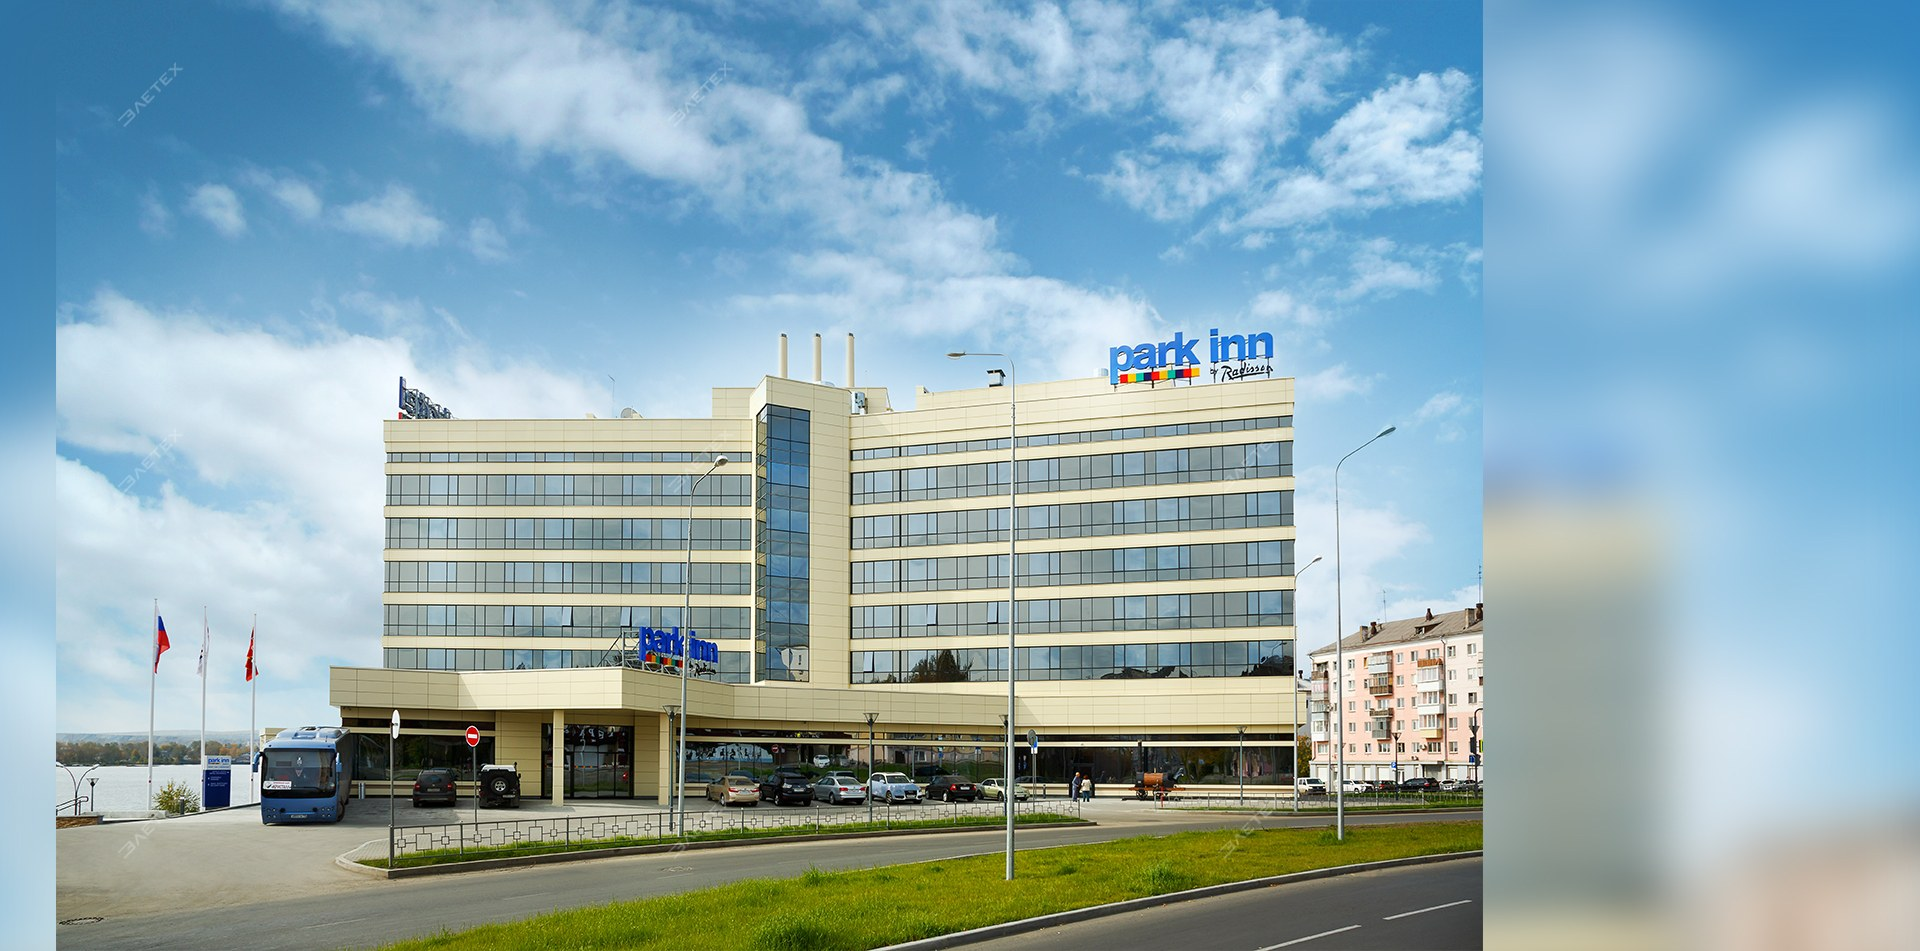 Гостиница «Park Inn by Radisson»